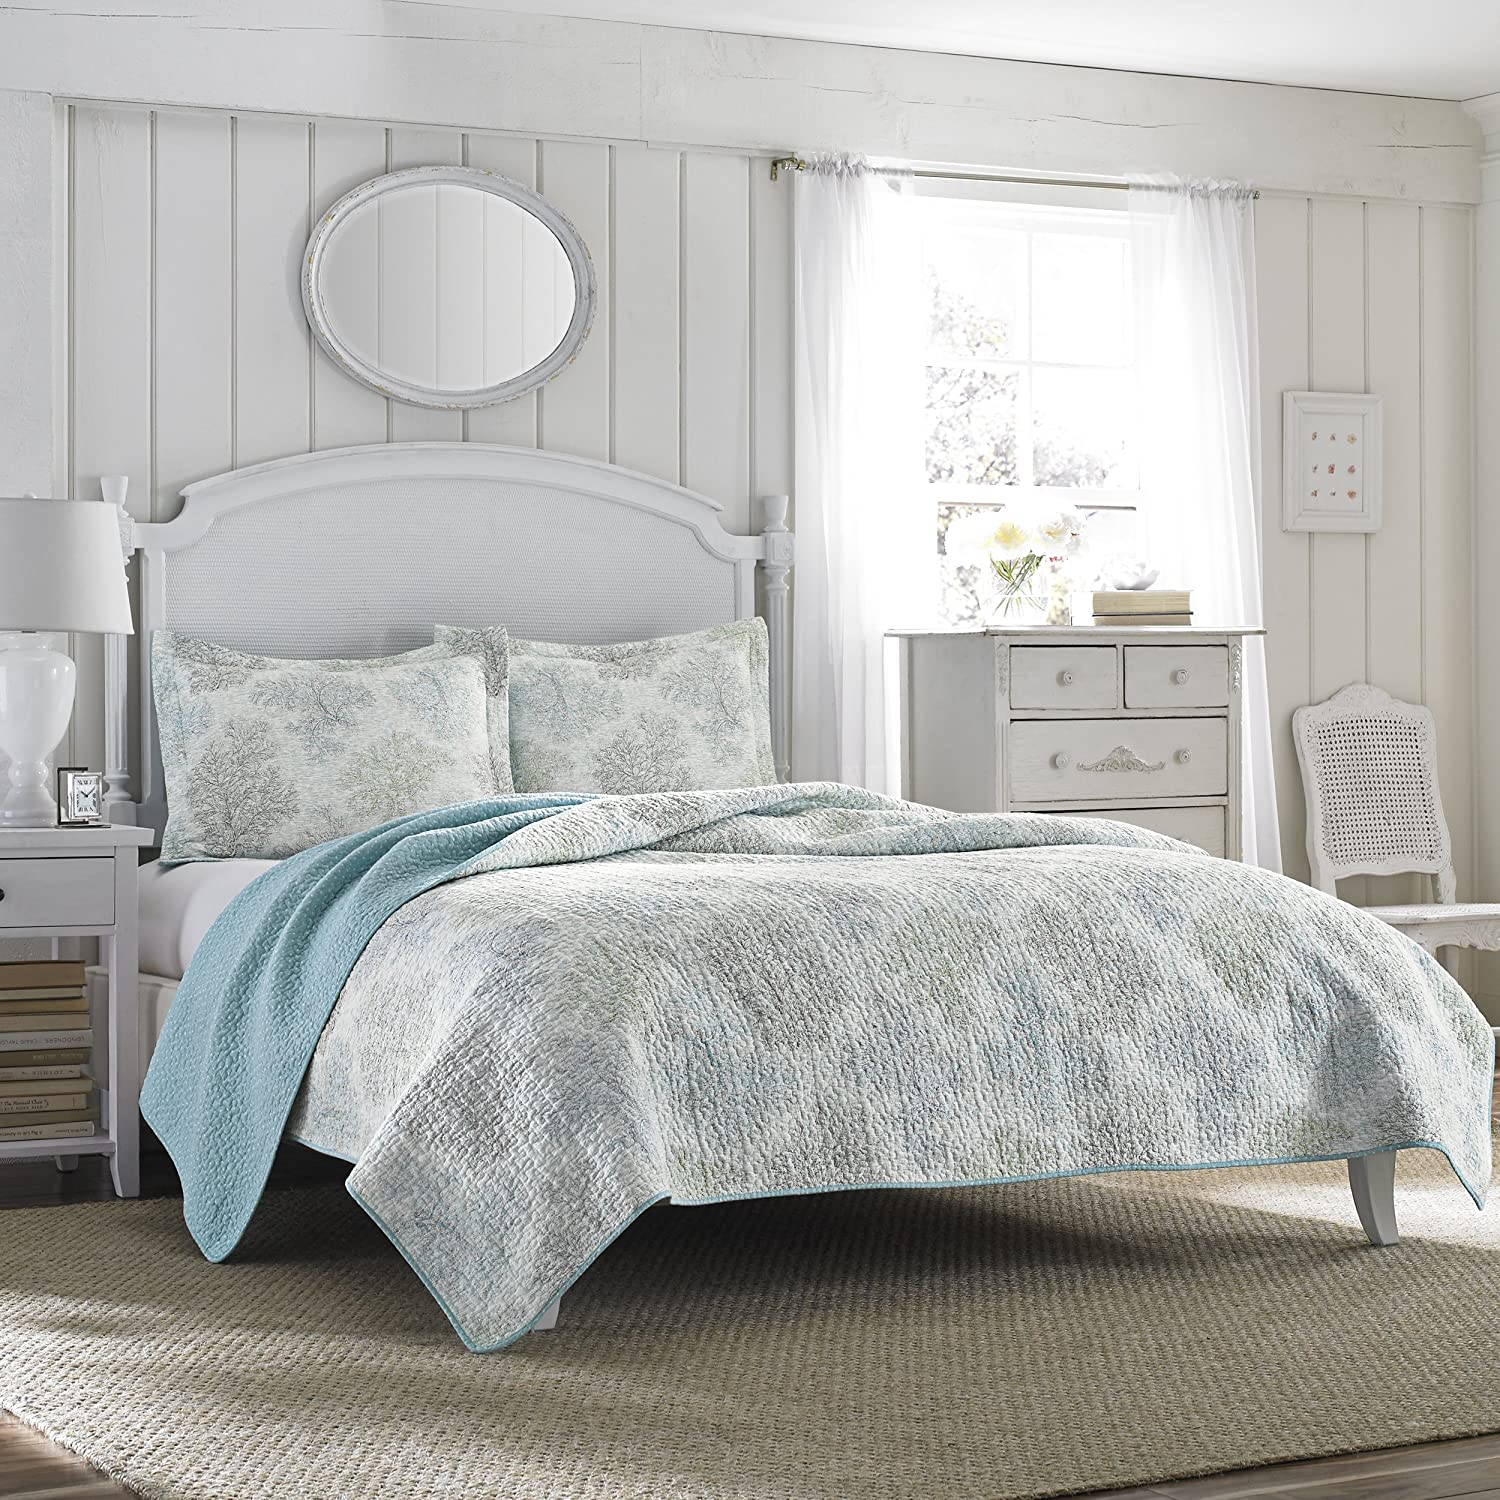 Laura Ashley Quilt Sets Blue